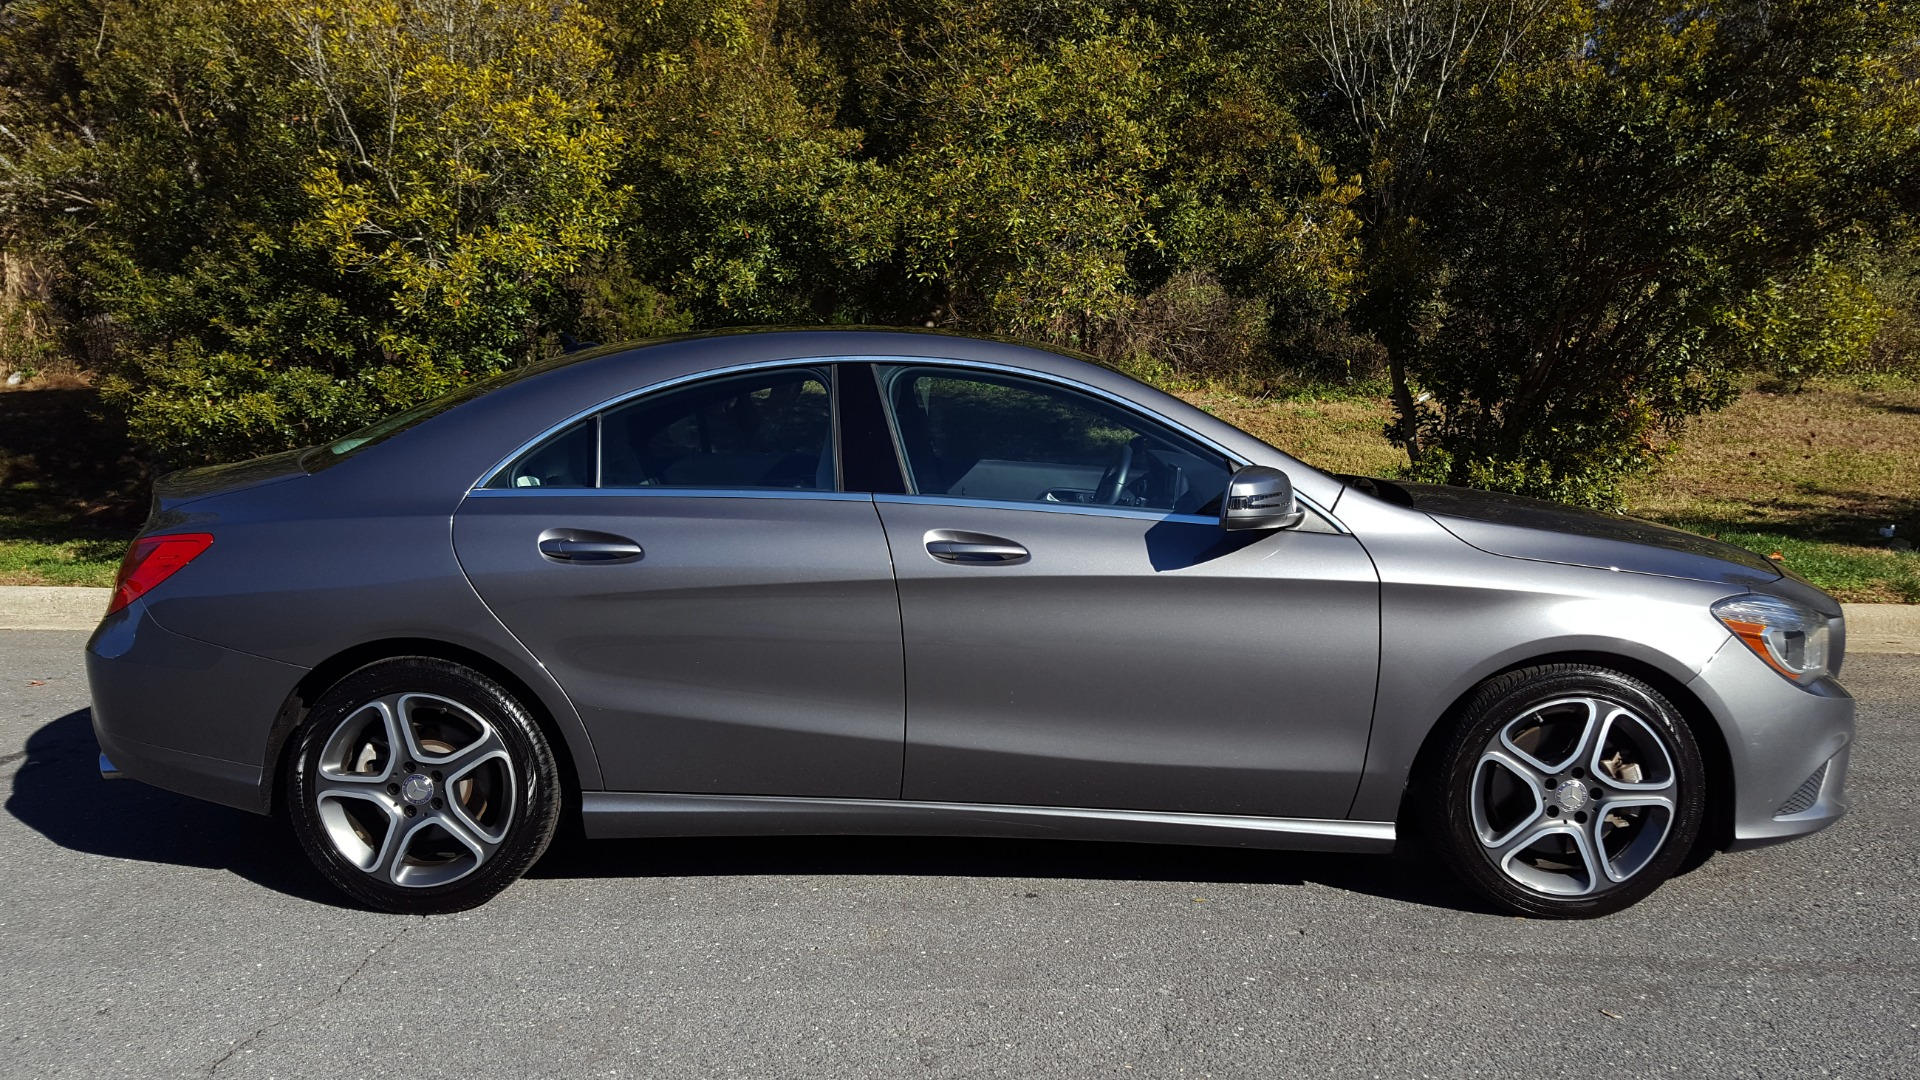 Used 2014 Mercedes-Benz CLA-CLASS CLA 250 / NAV / PANO-ROOF / BLIND SPOT ASSIST / XENON HEADLIGHTS for sale $19,995 at Formula Imports in Charlotte NC 28227 7